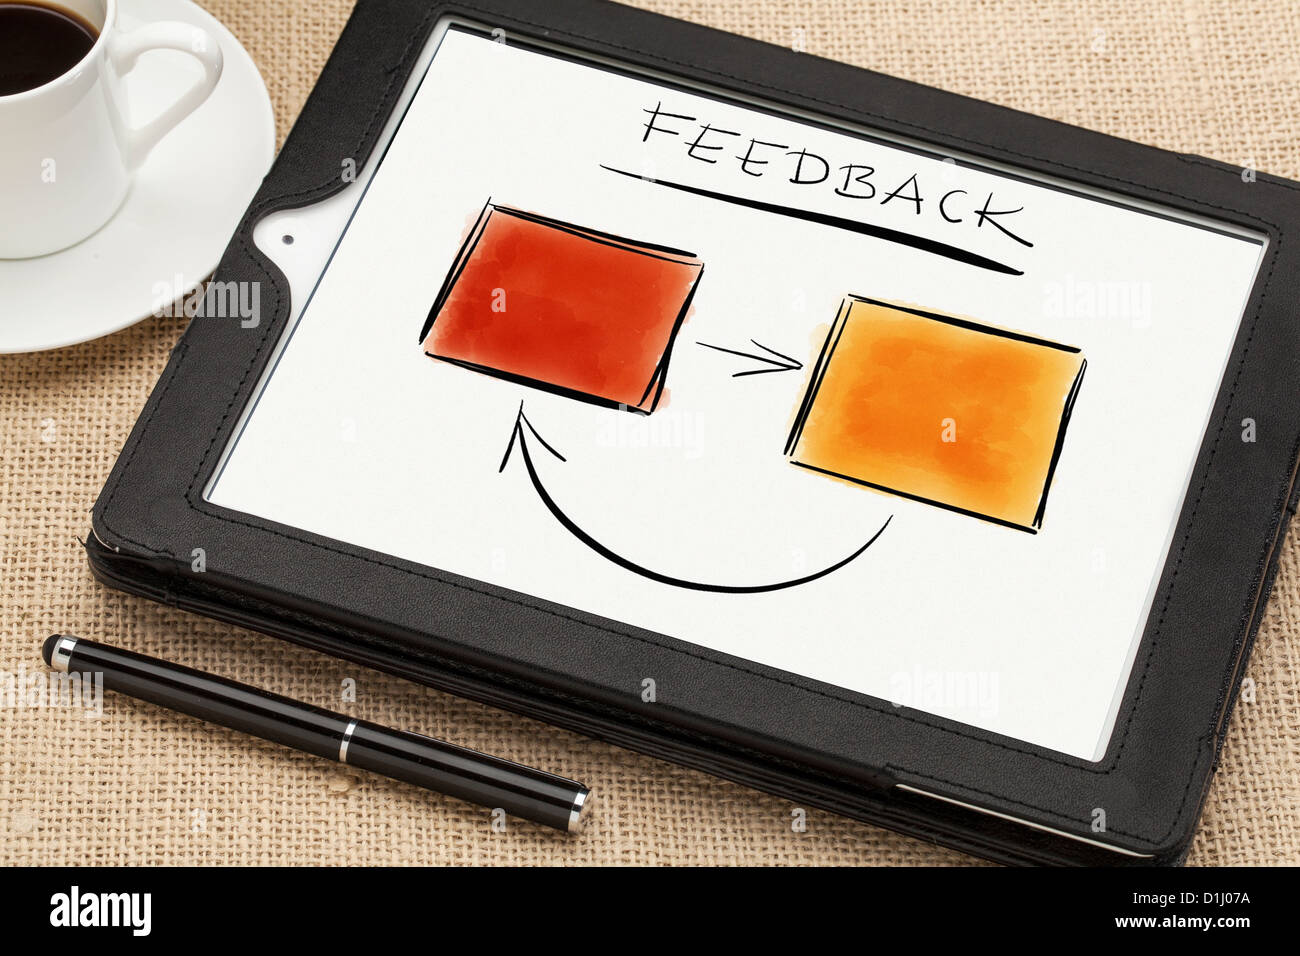 sketch of feedback diagram or flowchart on a tablet computer screen with a coffee cup and stylus pen - Stock Image